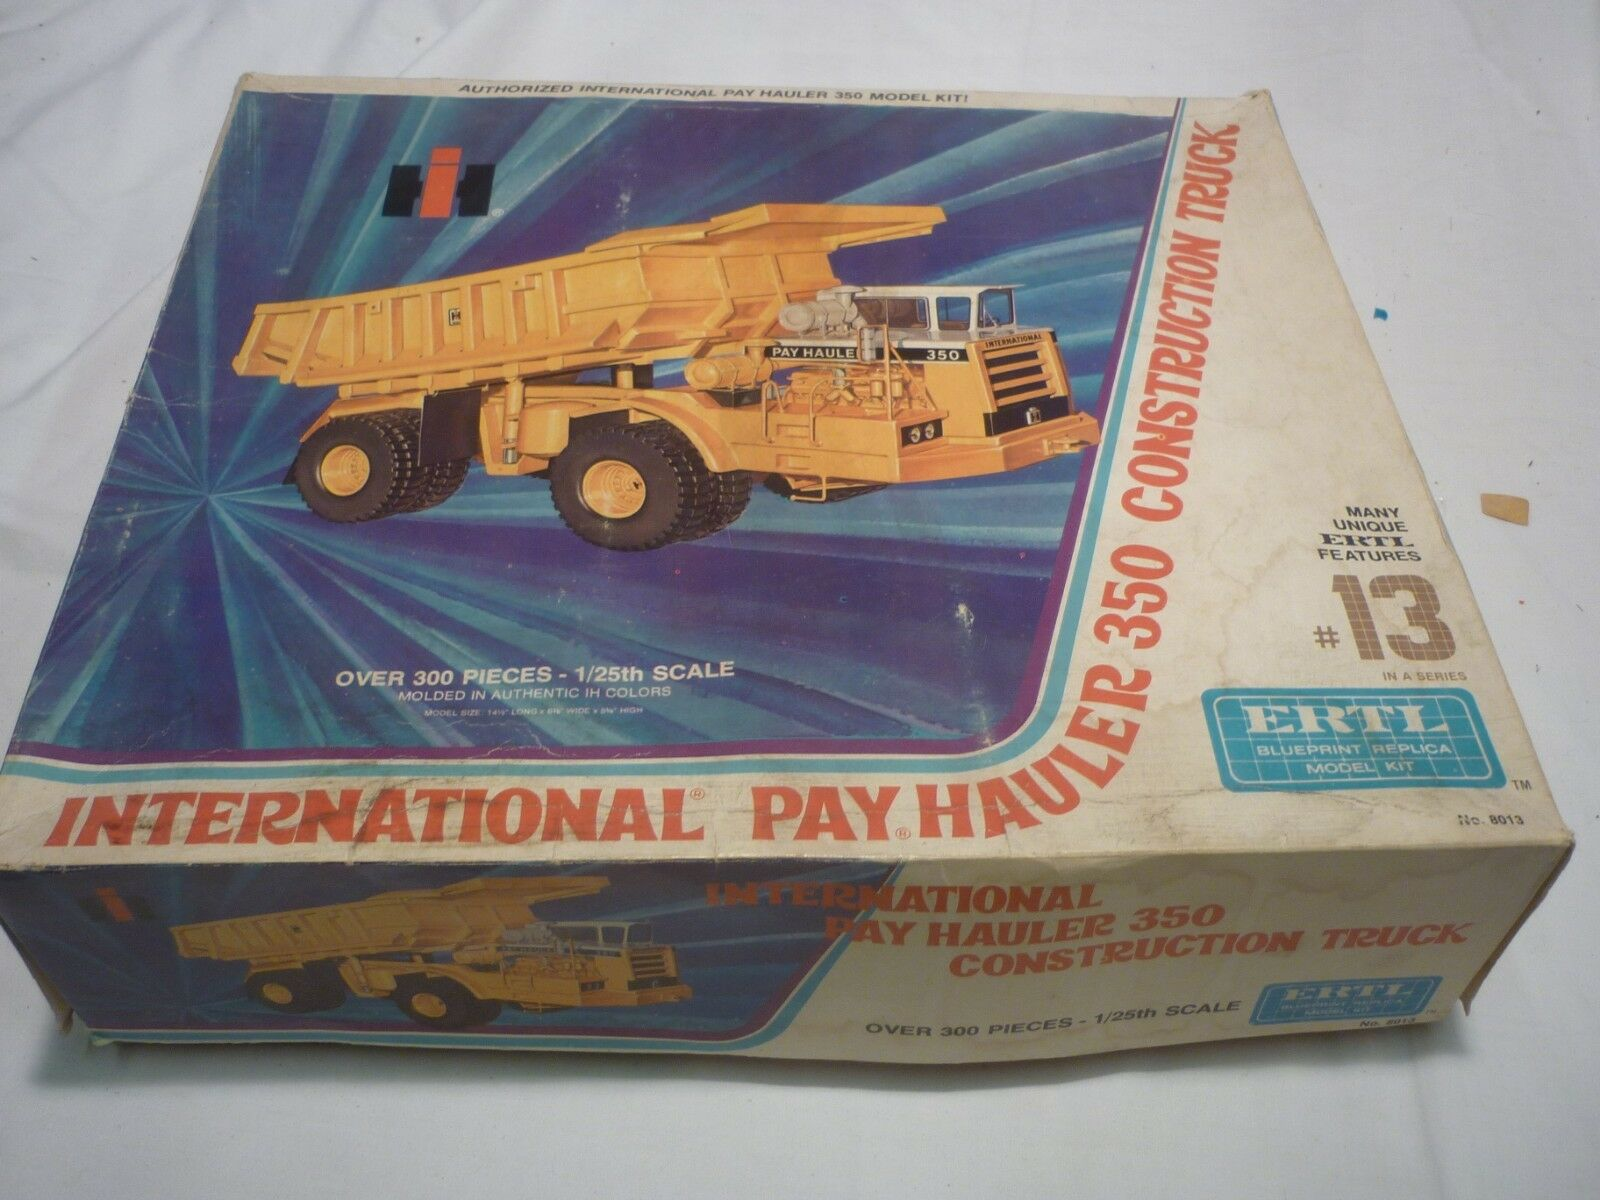 Ertl, briefly started plastic kit of a international pay hauler 350,  boxed